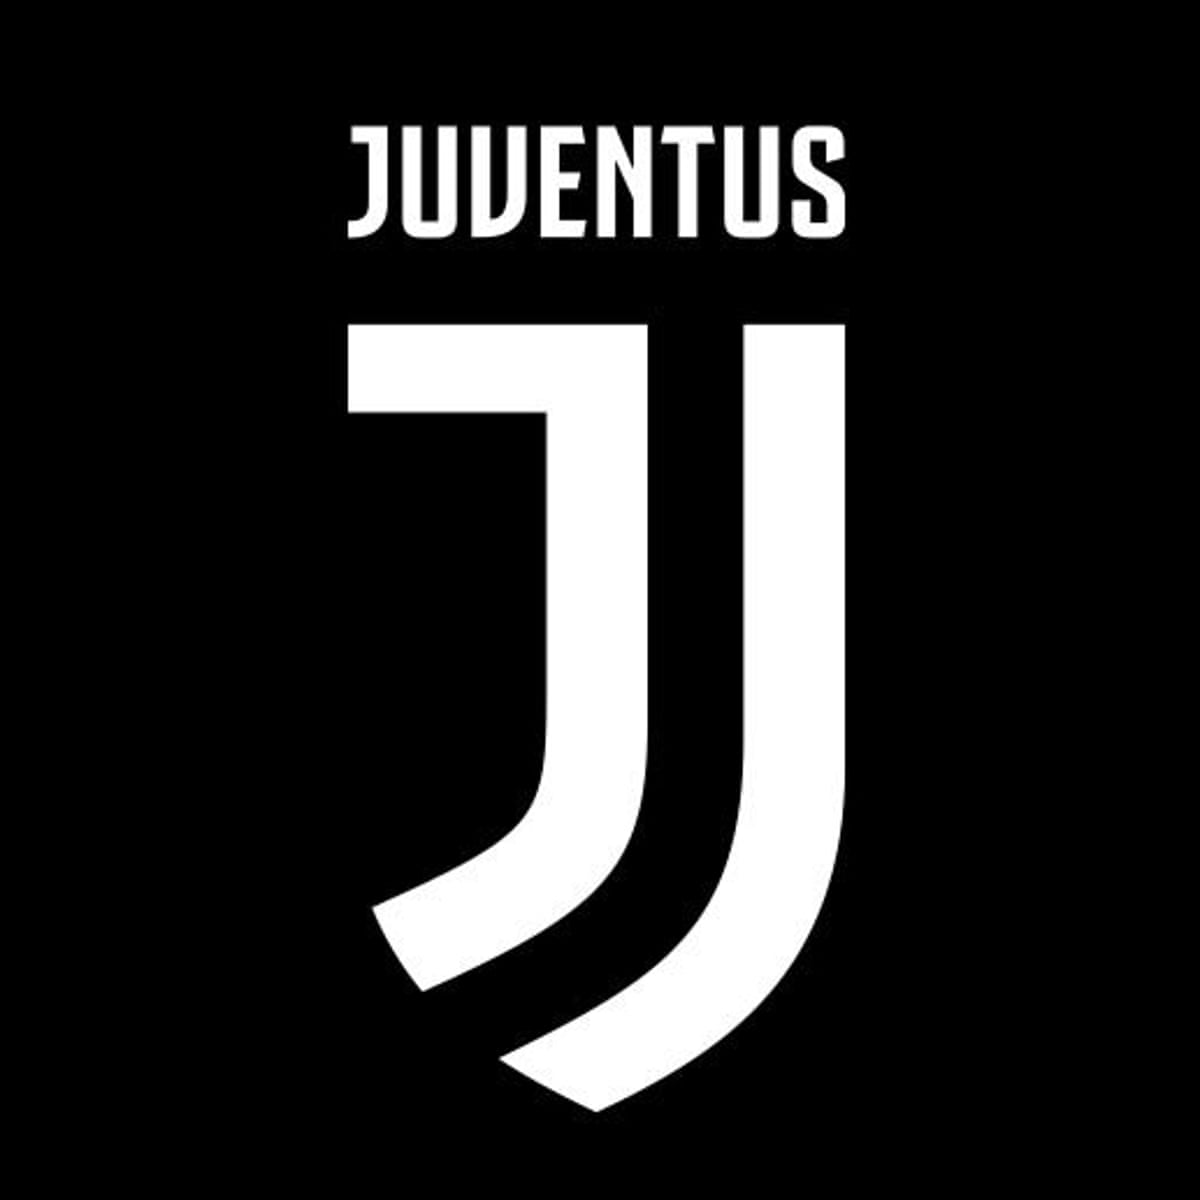 Juventus Unveil Bold New Club Crest At Ceremony In Milan Juventus The Guardian